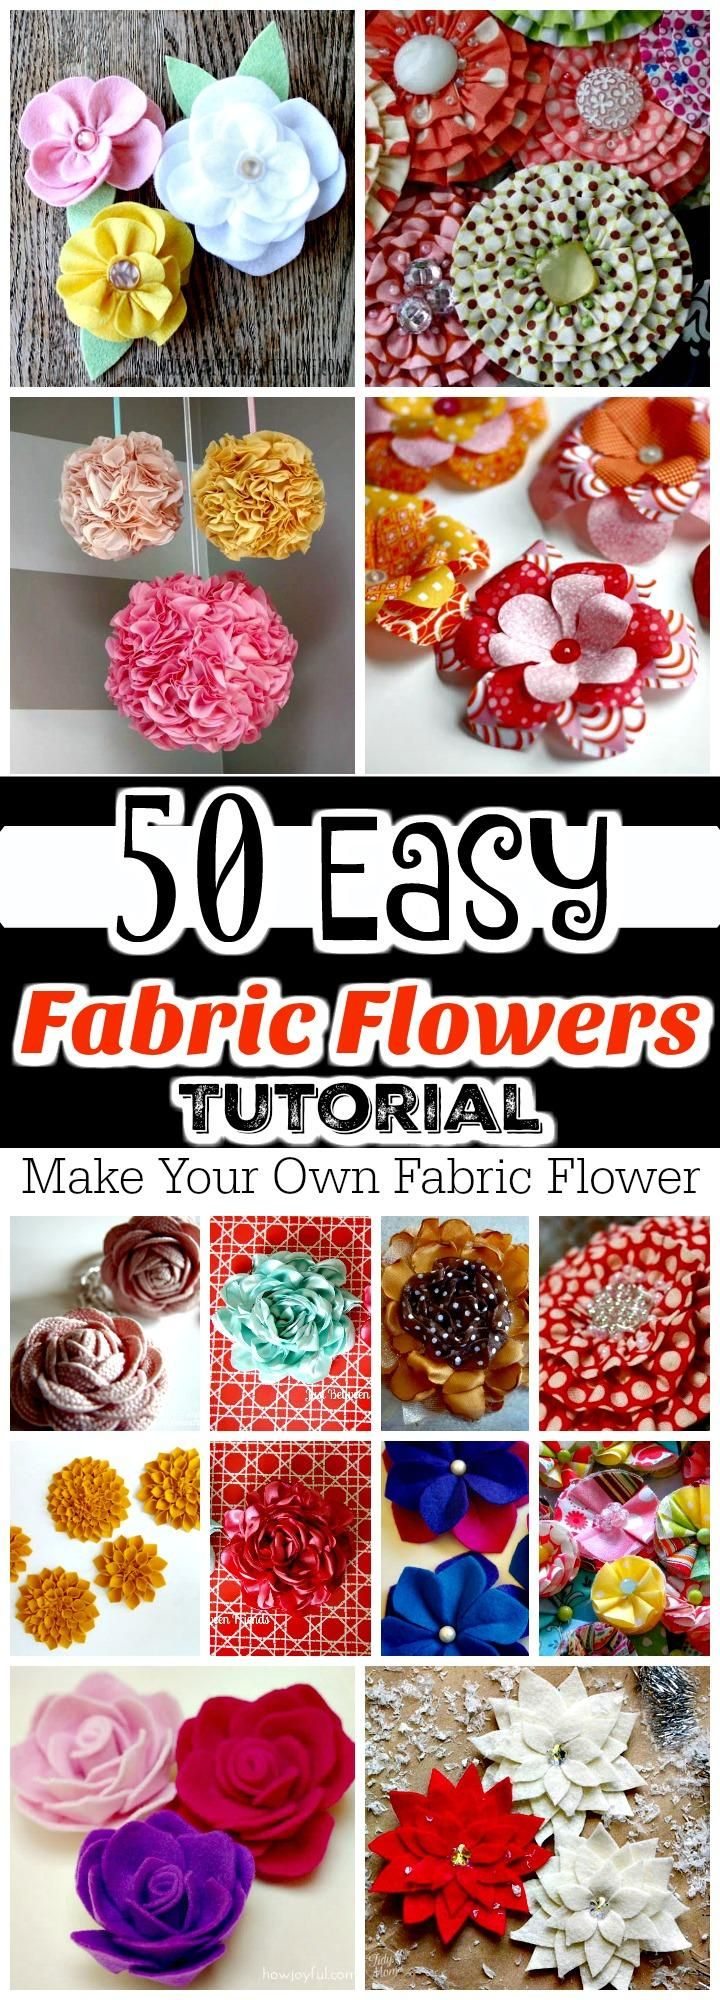 50 Easy Fabric Flowers Tutorial - Make Your Own Fabric Flowers -   18 ribbon flower crafts